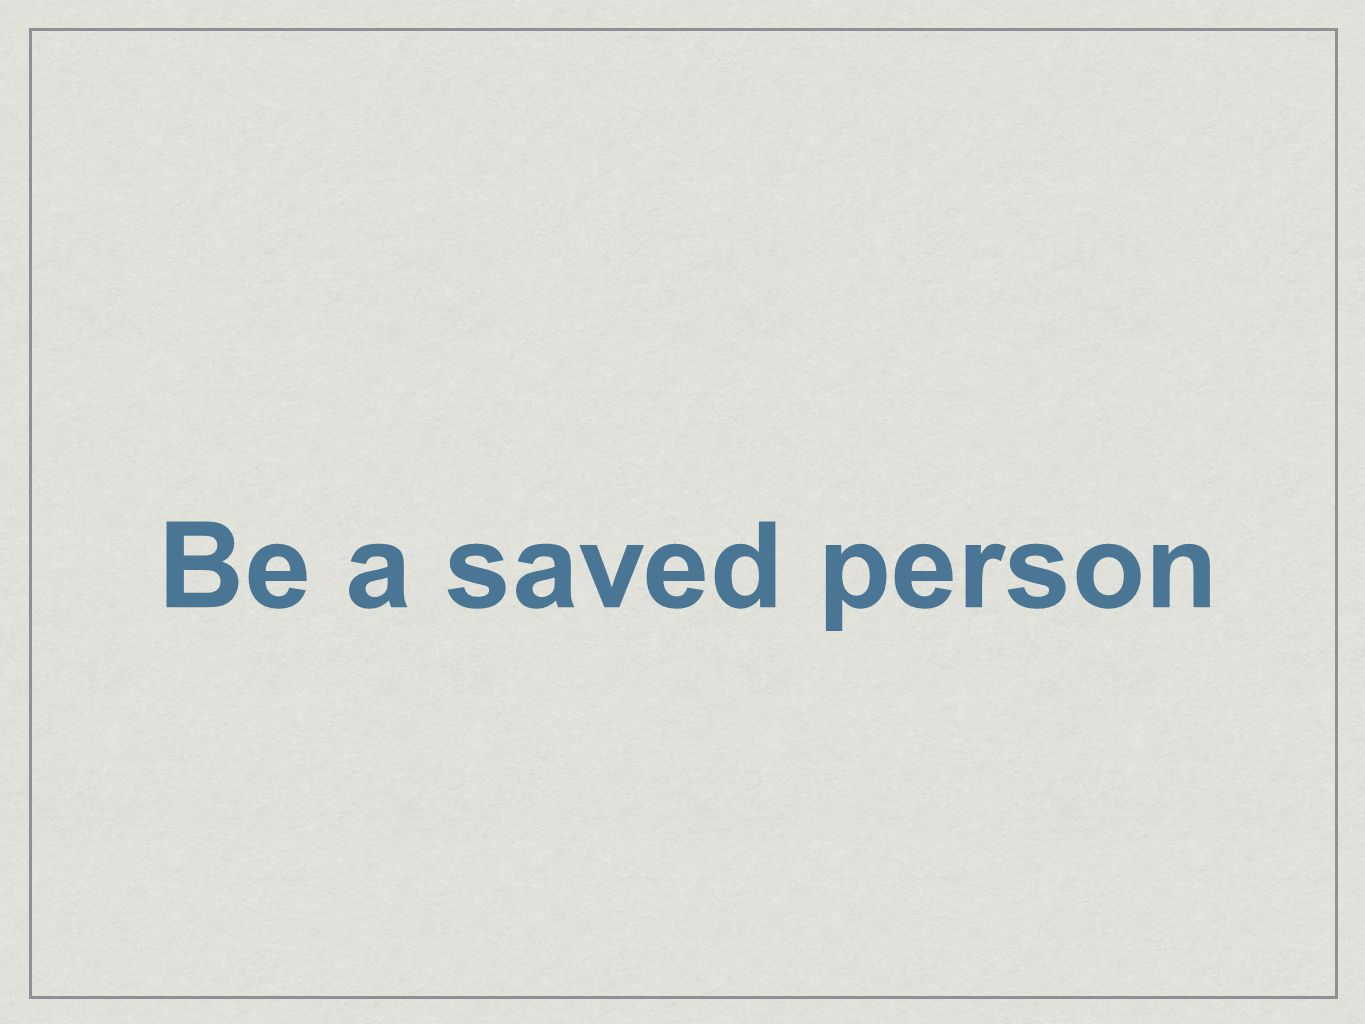 Be a saved person